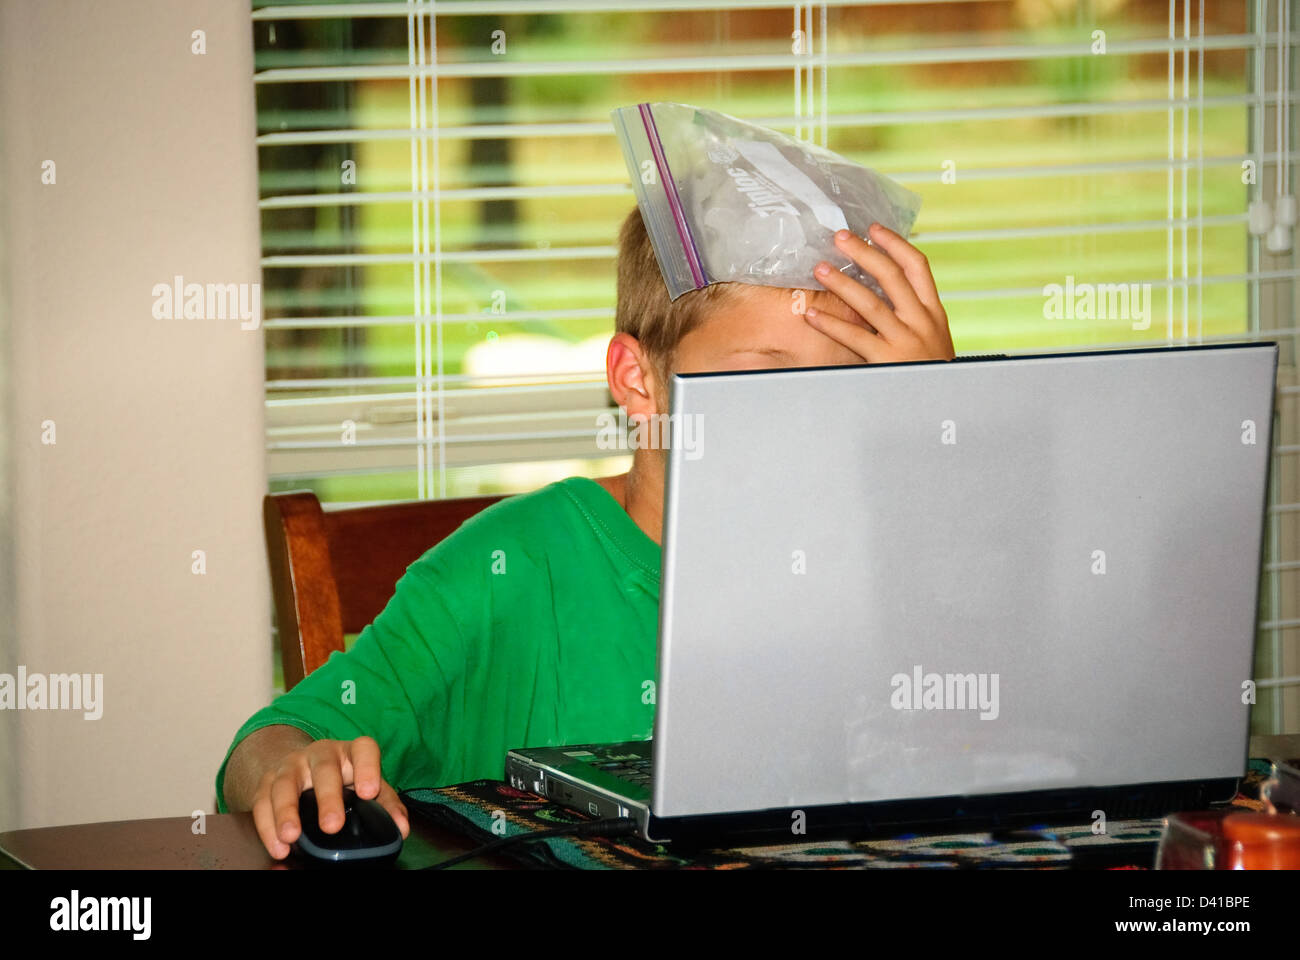 Young boy on laptop with icebag on head for his stressful headache. - Stock Image